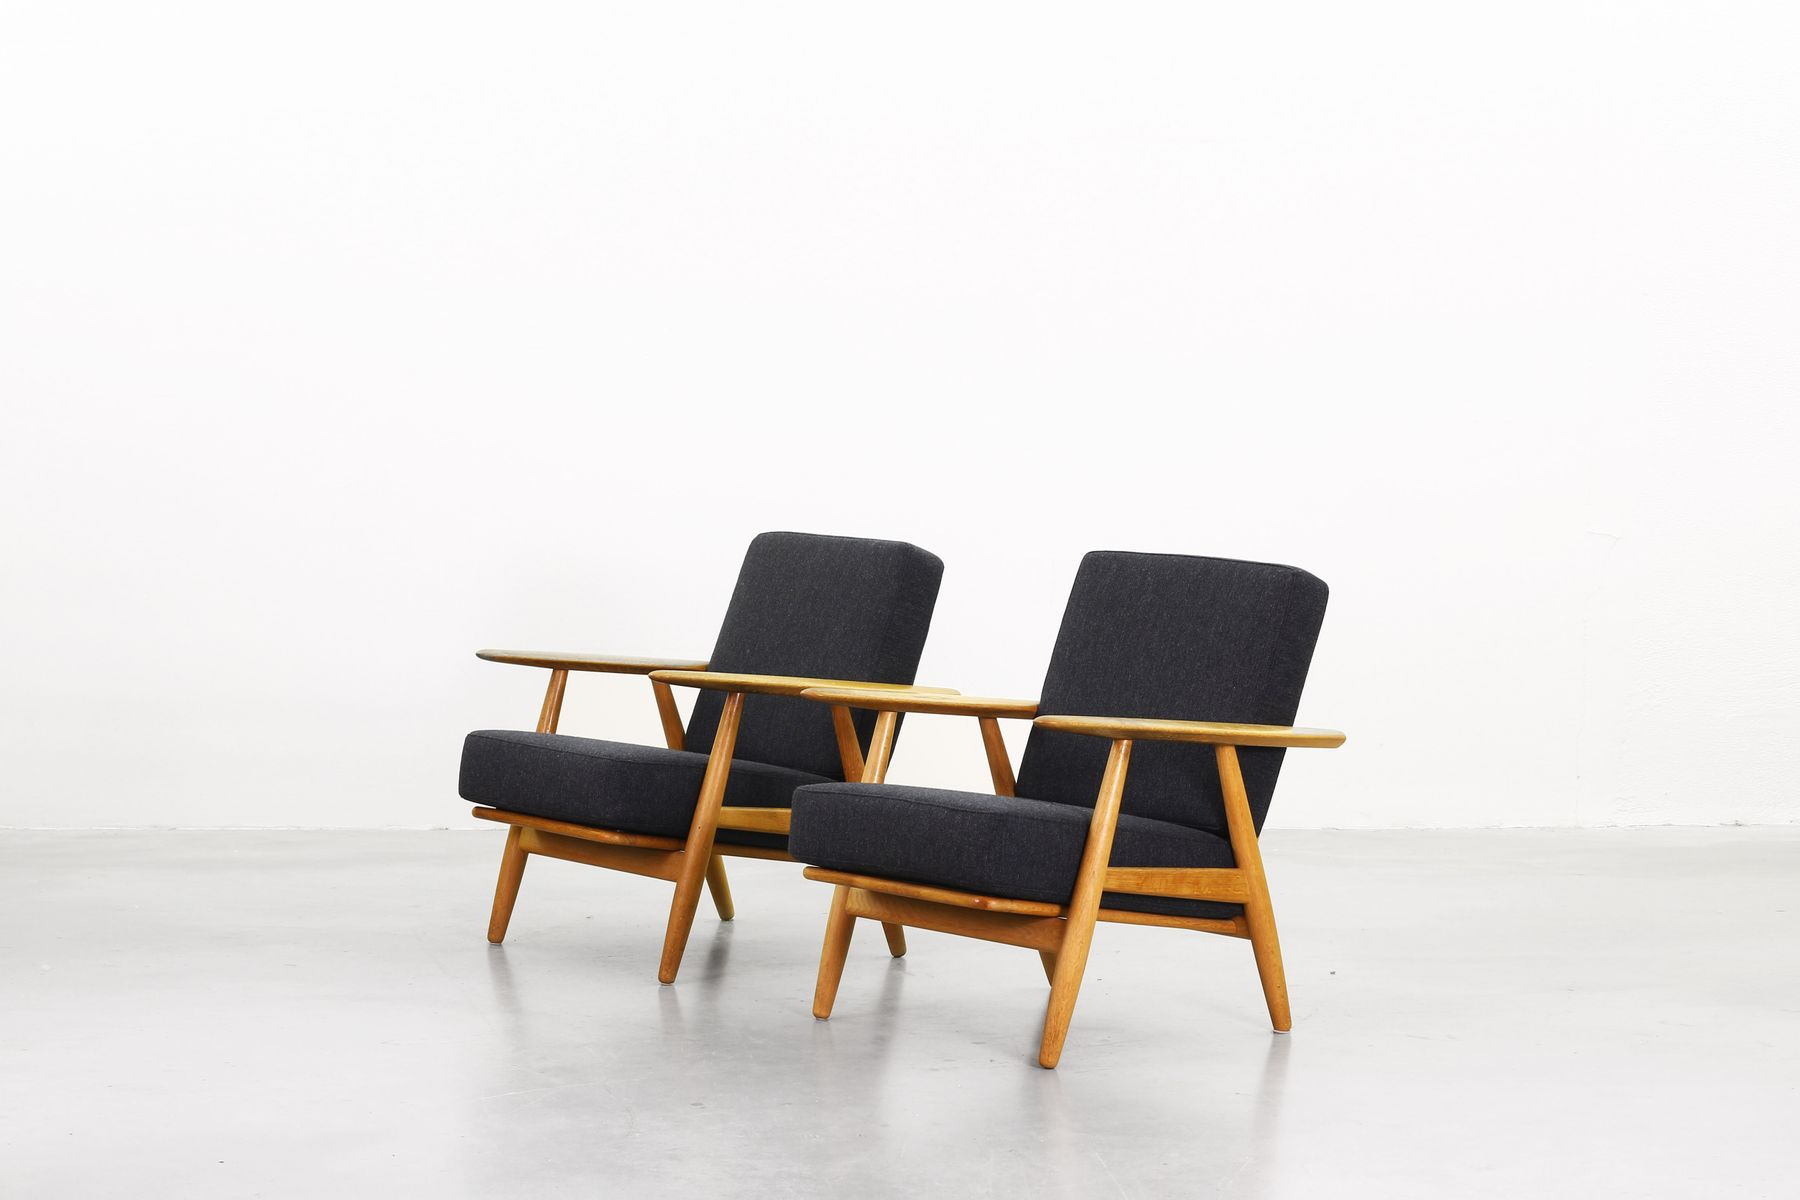 240 Cigar Lounge Chairs By Hans J Wegner For Getama 1960s Set Of 2 For Sale At Pamono